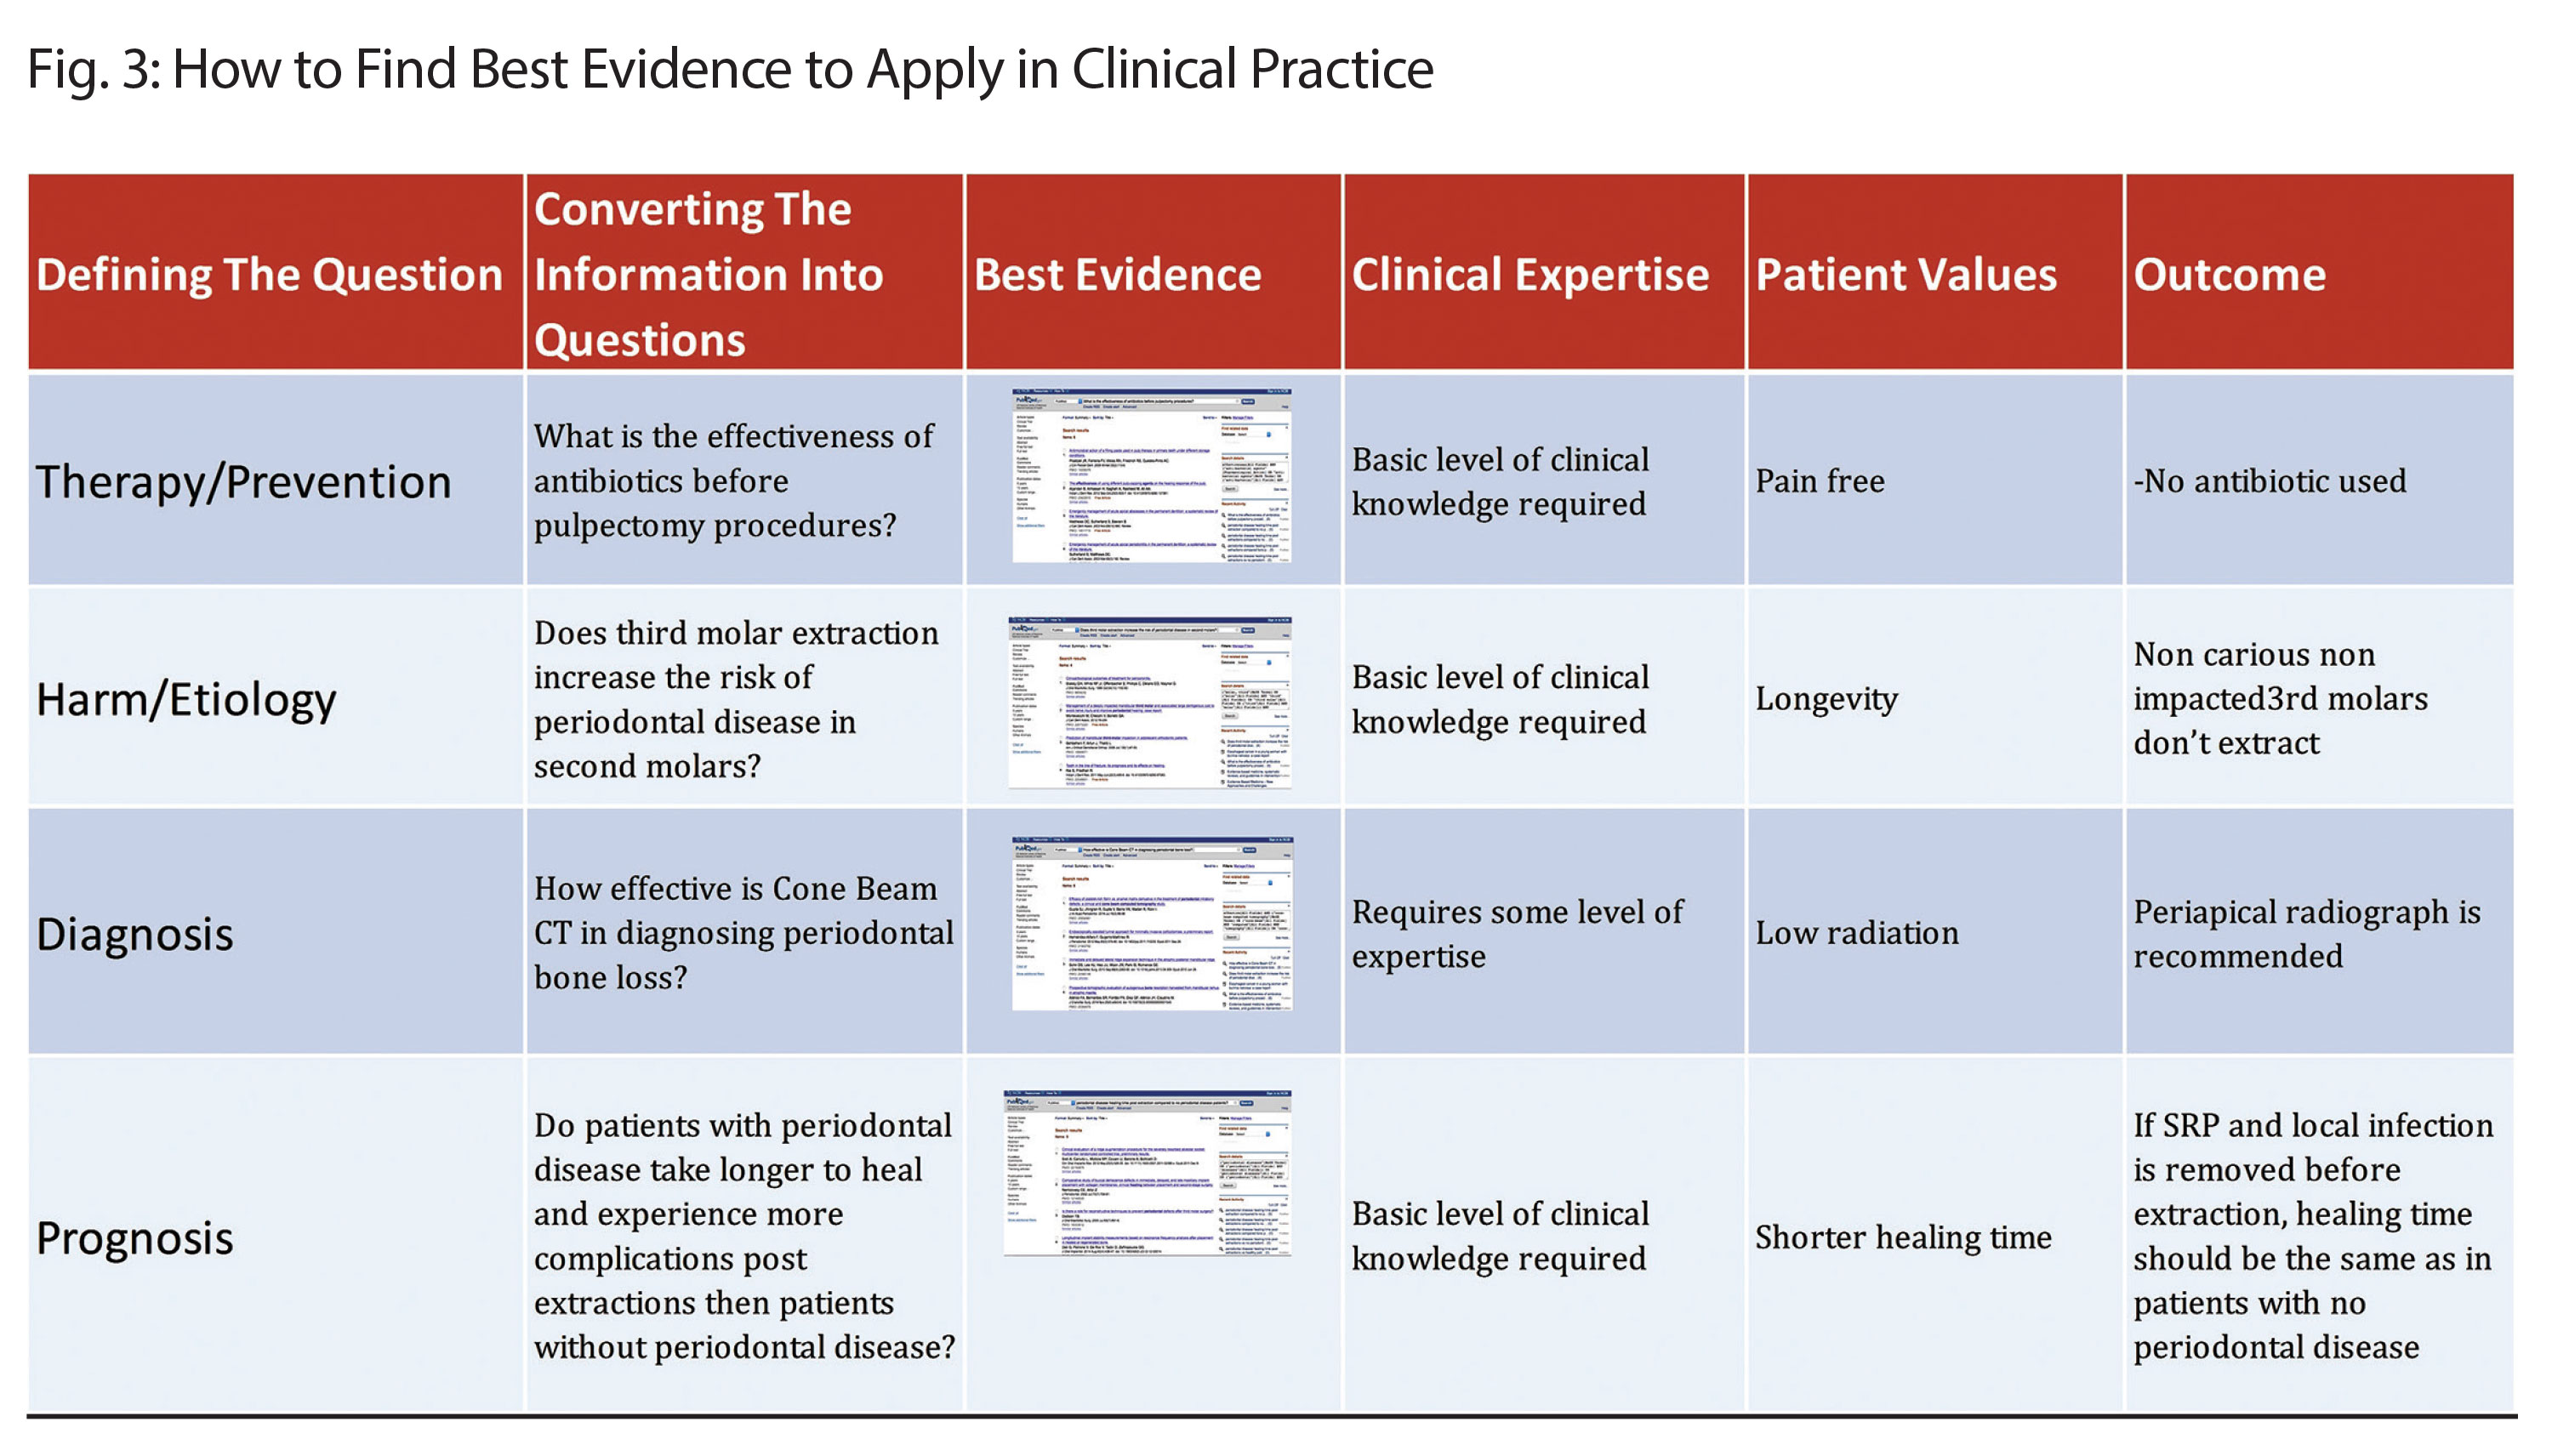 How to find best evidence to apply in clinical practice